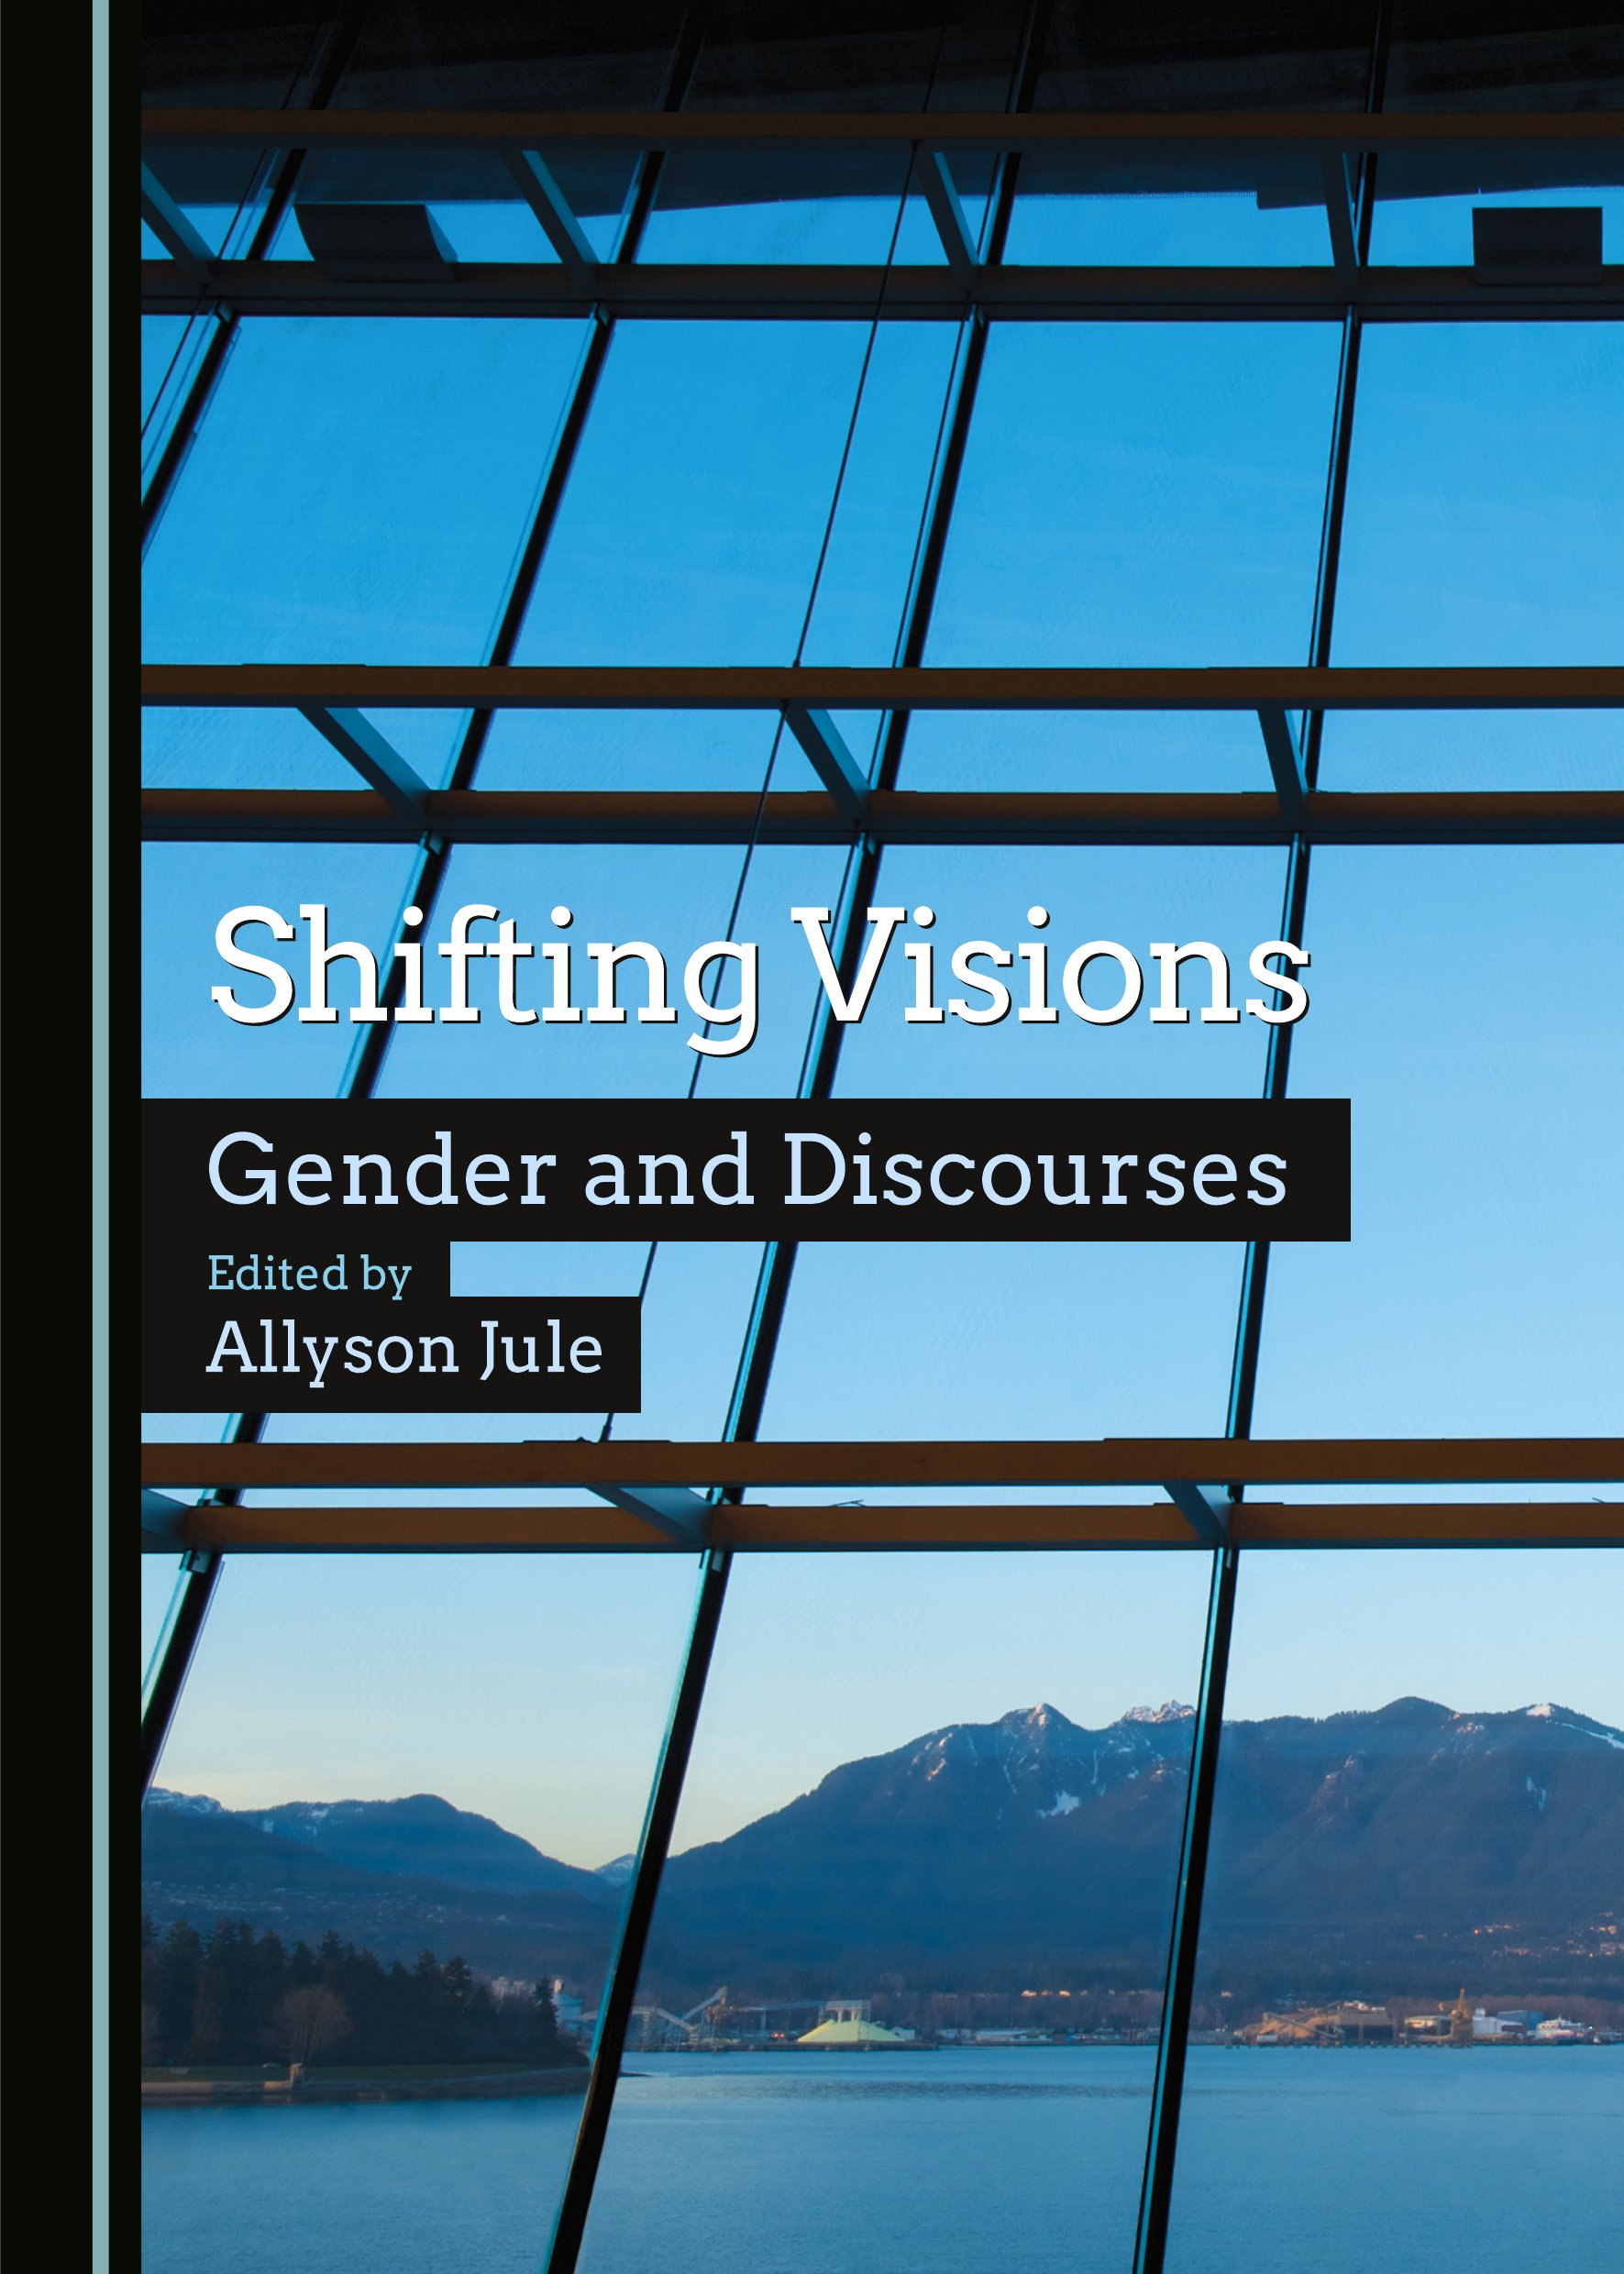 Shifting Visions: Gender and Discourses